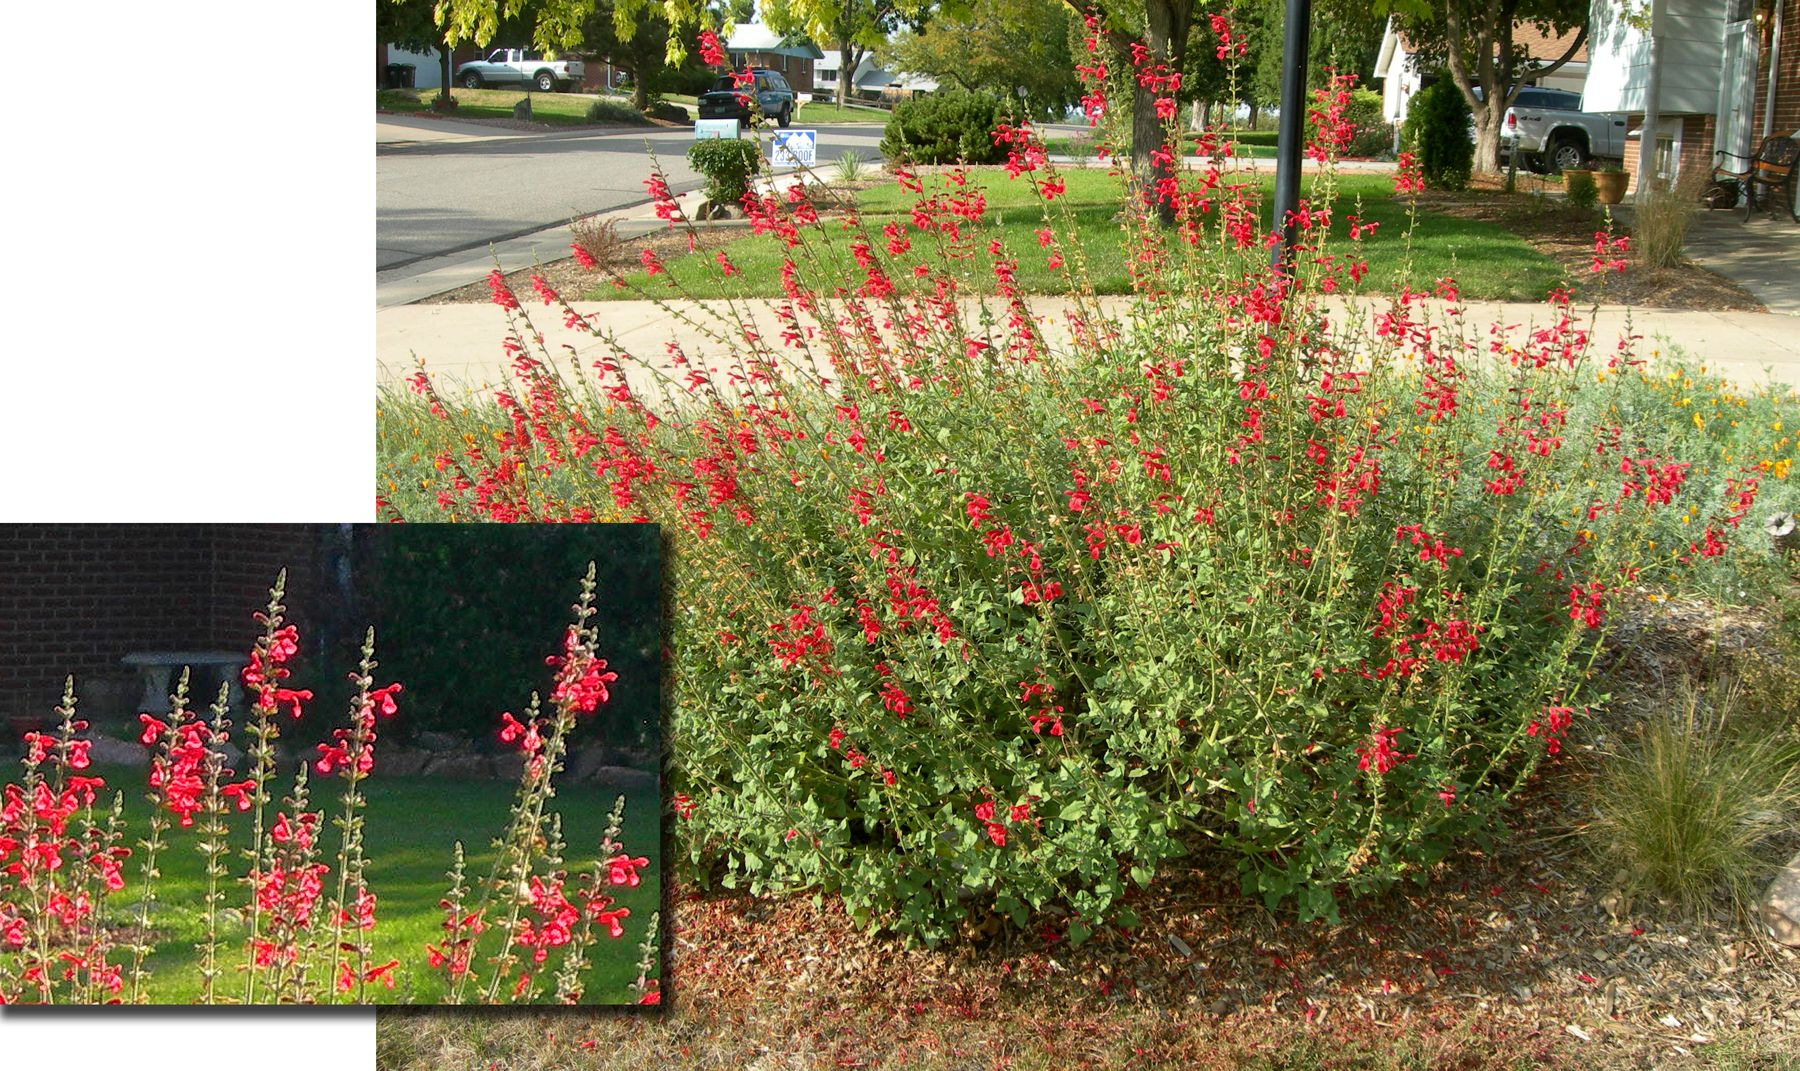 Vermilion bluffs mexican sage a large sized flowering perennial vermilion bluffs mexican sage a large sized flowering perennial that is a real attention grabber i have found this plant to be an excellent choice for mightylinksfo